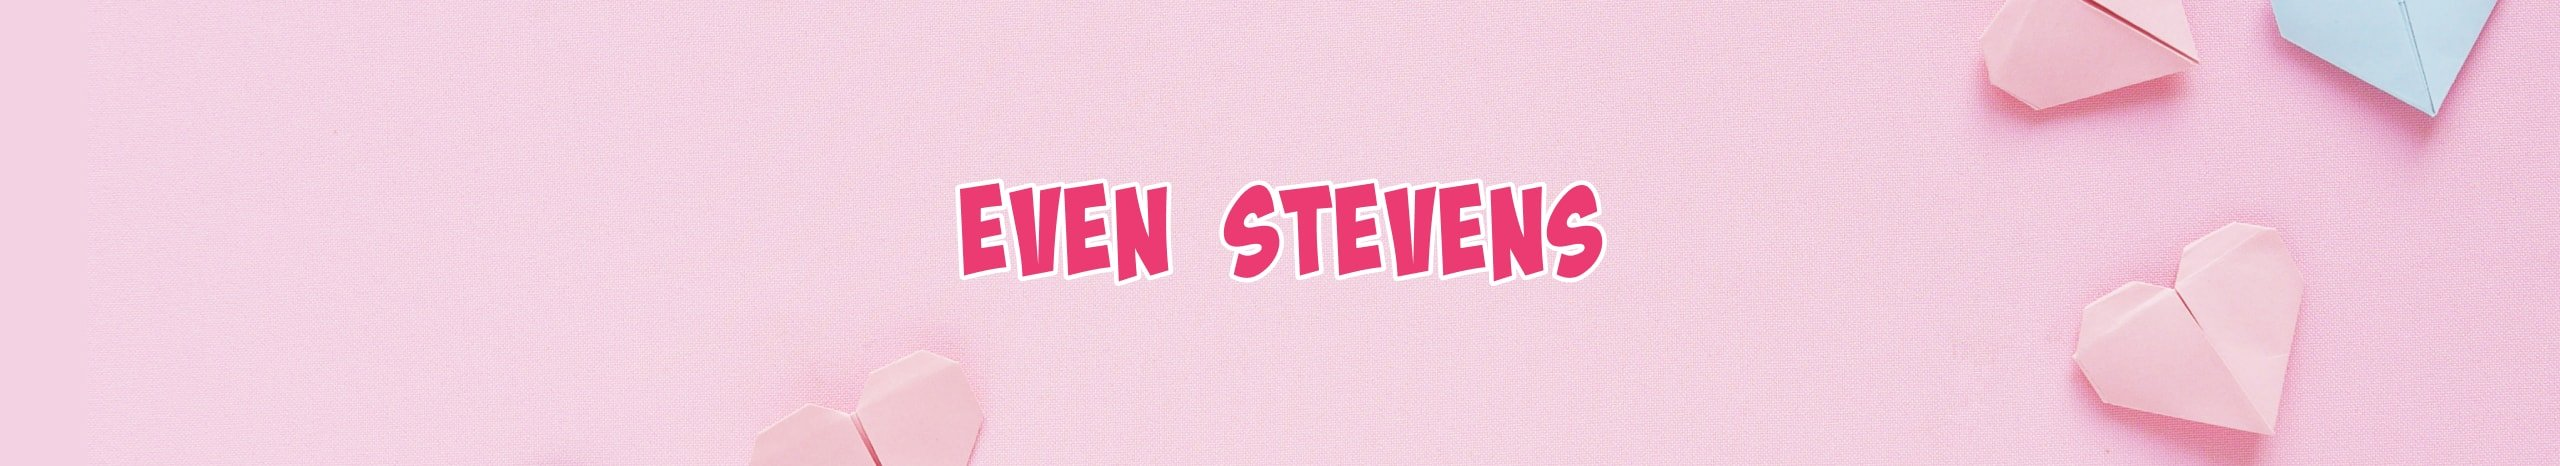 Even Stevens – our even odd online bingo room where every player has the same chance of winning the jackpot!